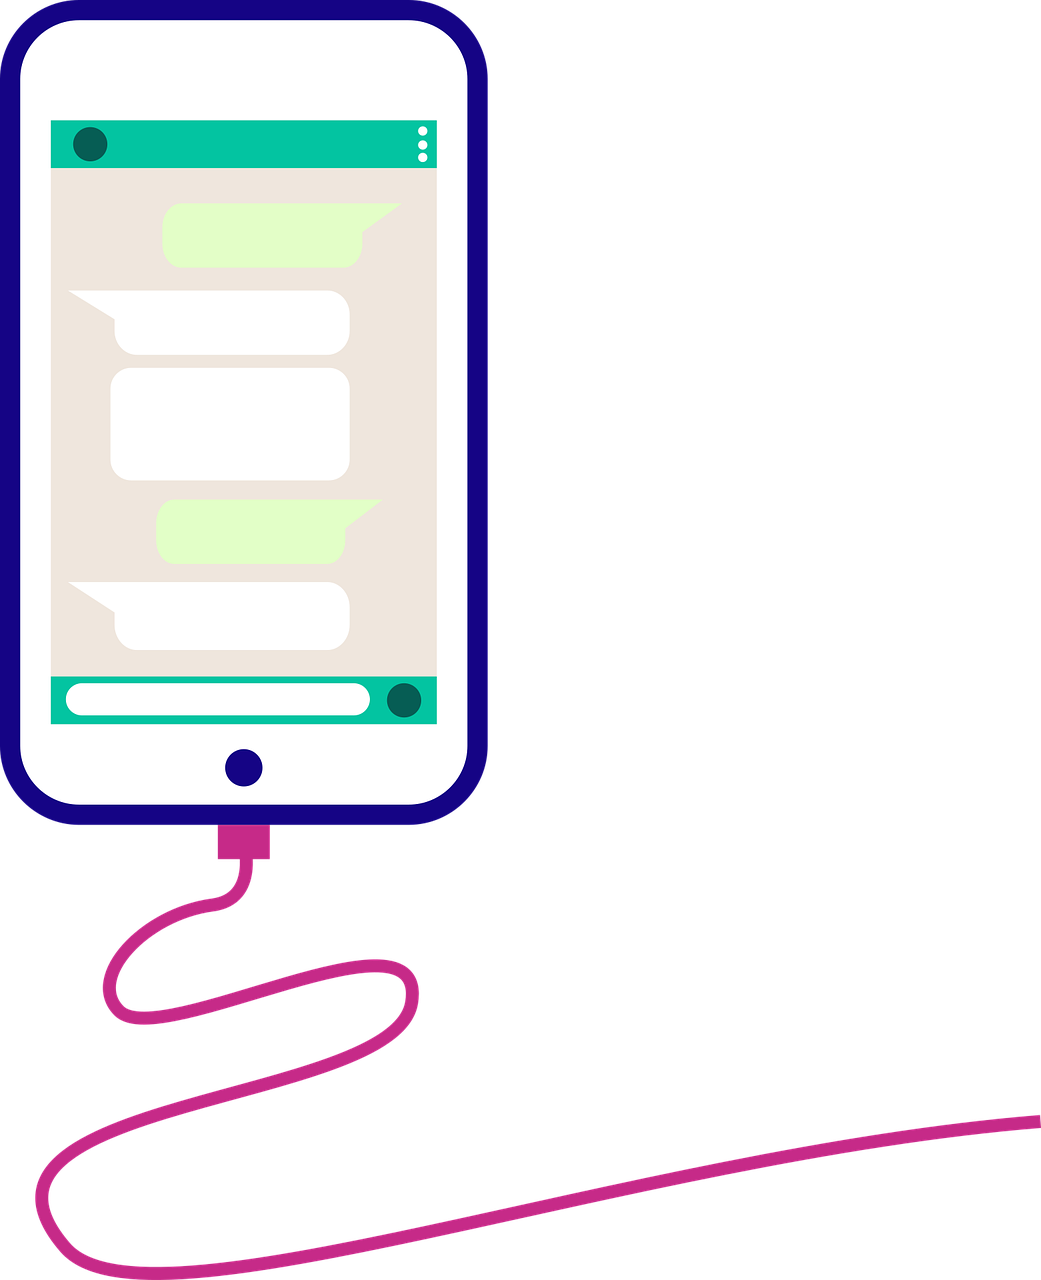 Phone Screen Chat Cable Charger  - febrianes86 / Pixabay